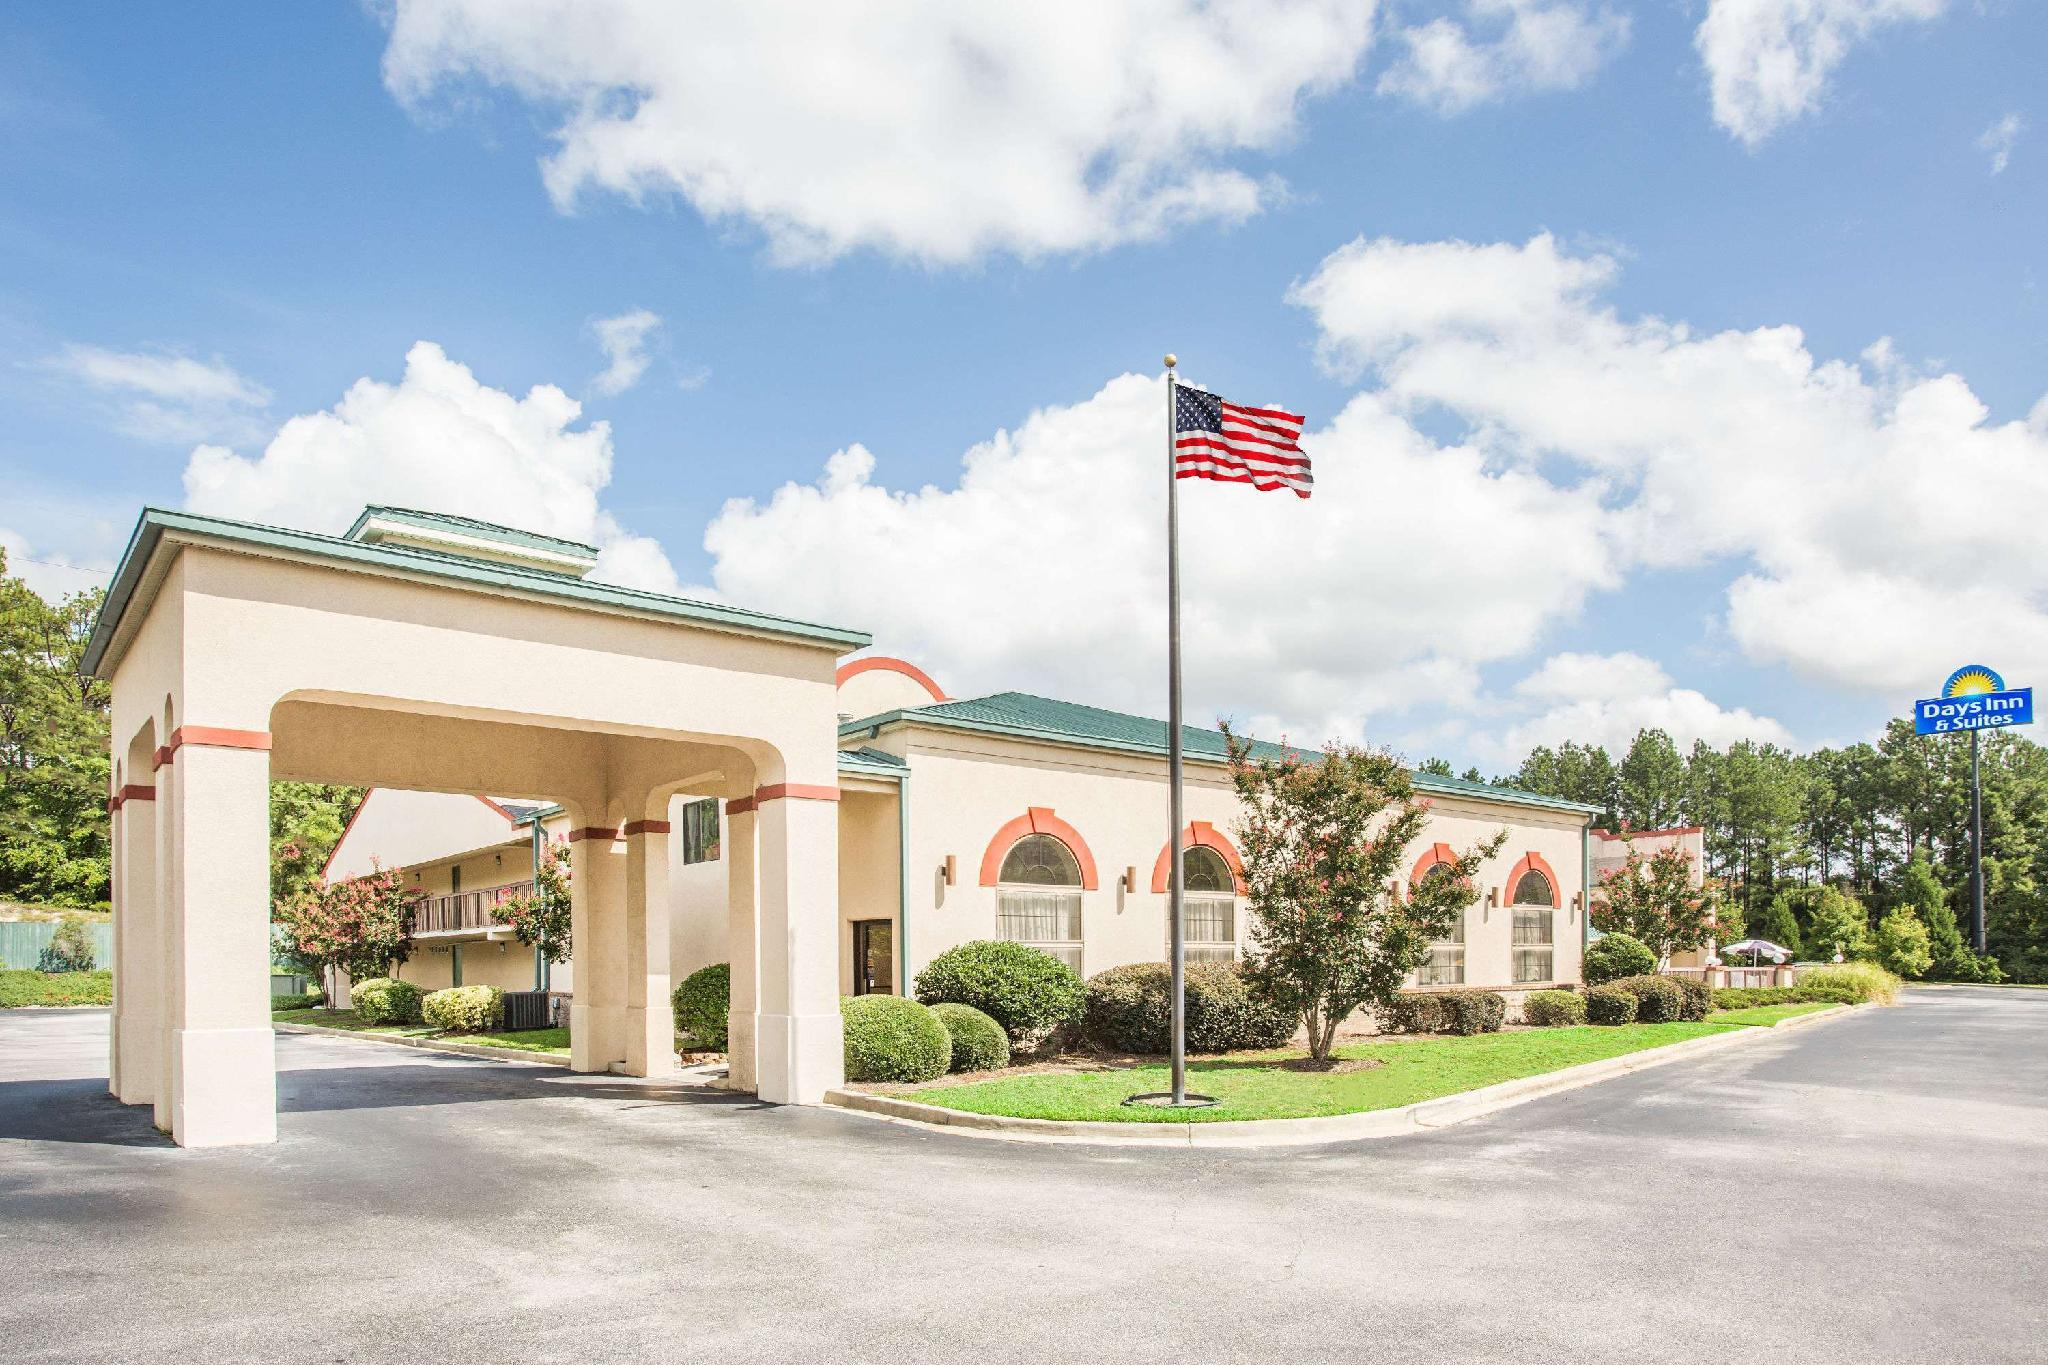 Days Inn And Suites By Wyndham Columbia Airport